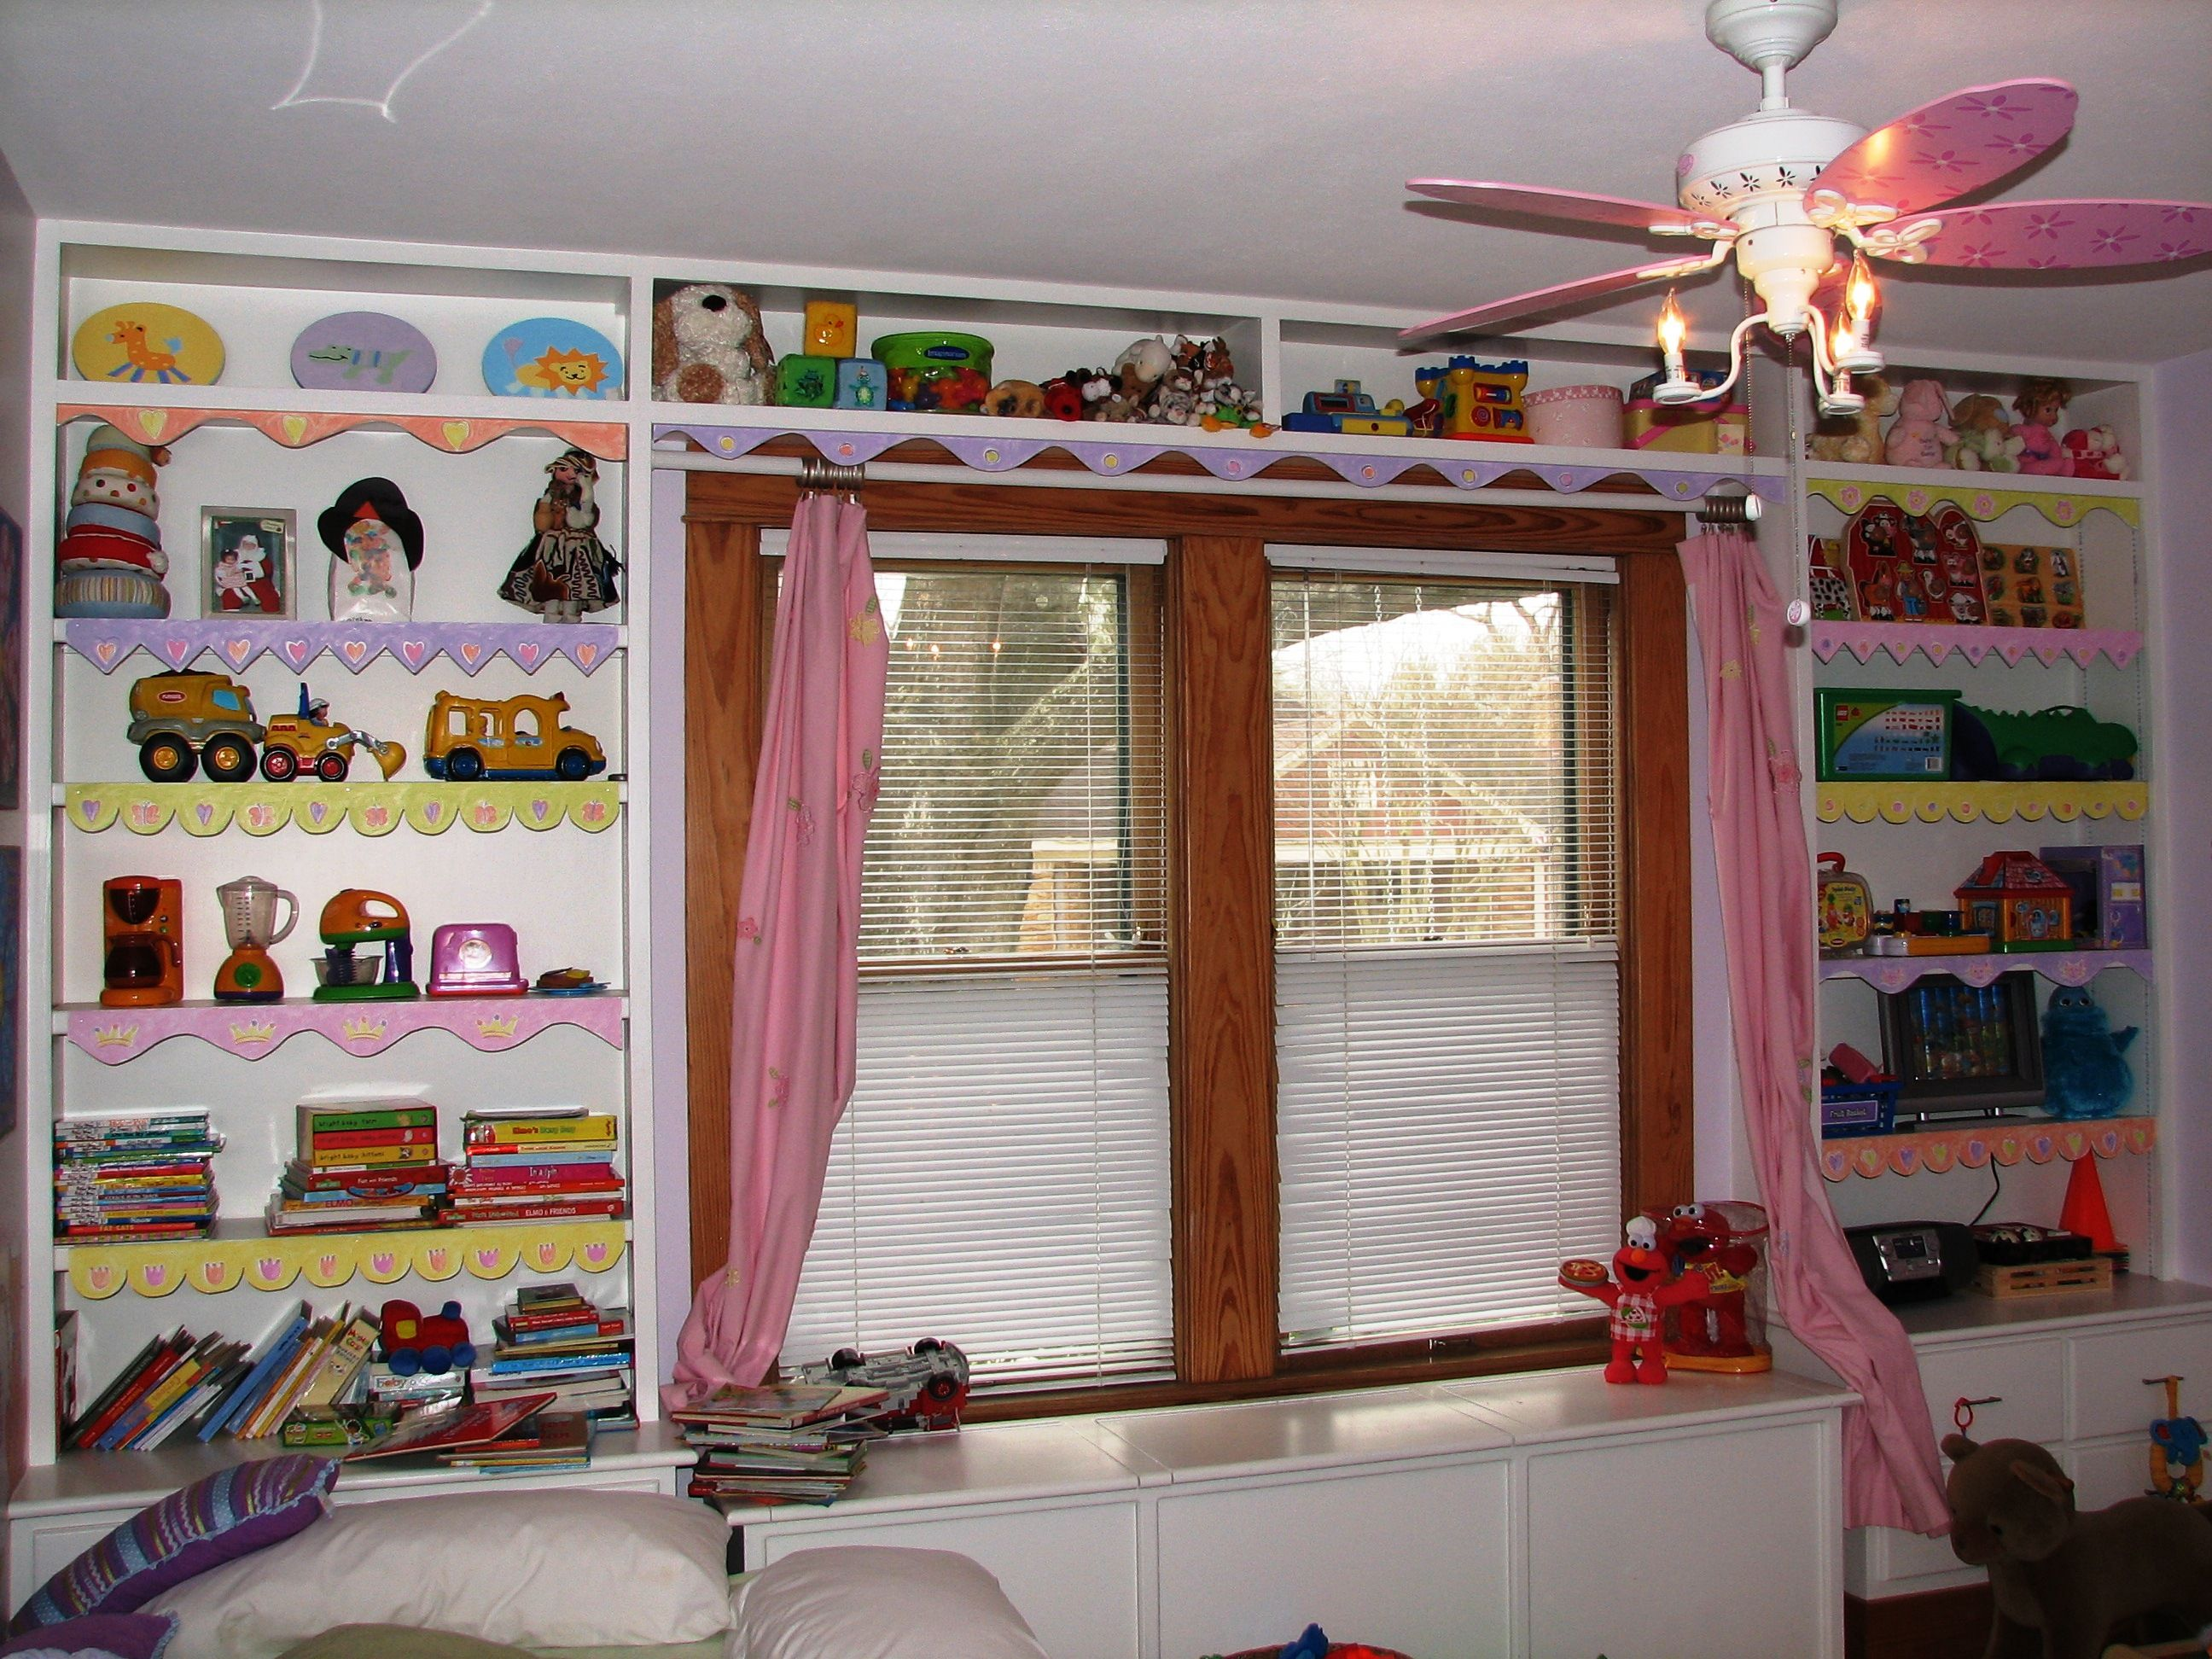 Kitchen Window Shelf 818ae81a75a3c3bd94b5cfe11dedb047jpg